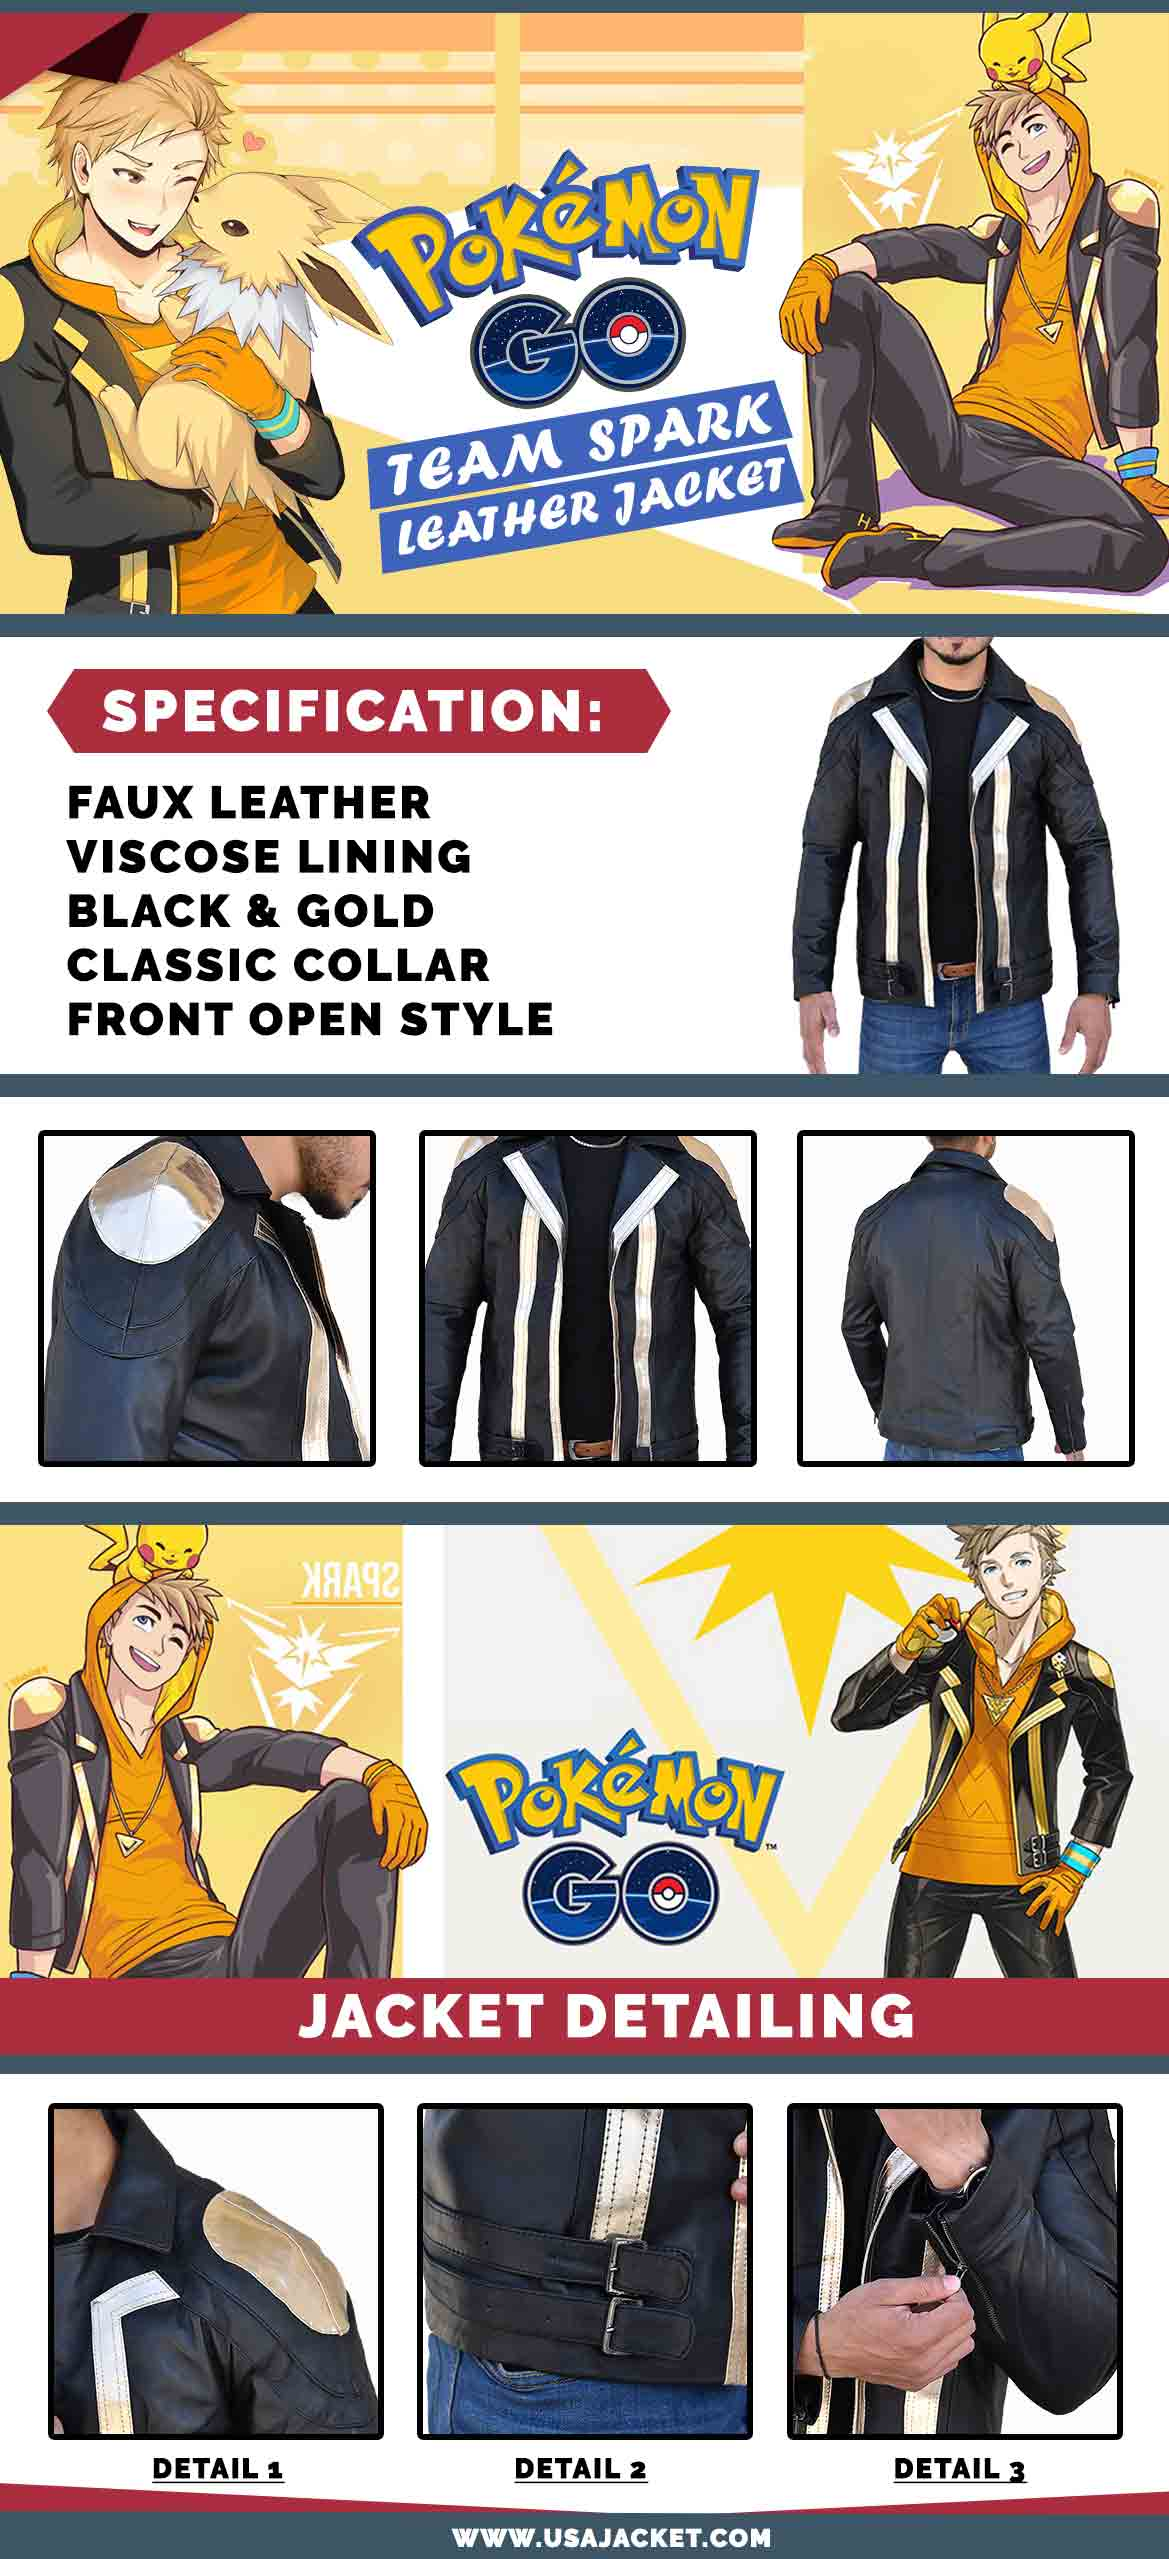 Pokemon Go Team Instinct Spark Black Leather Jacket Infographic